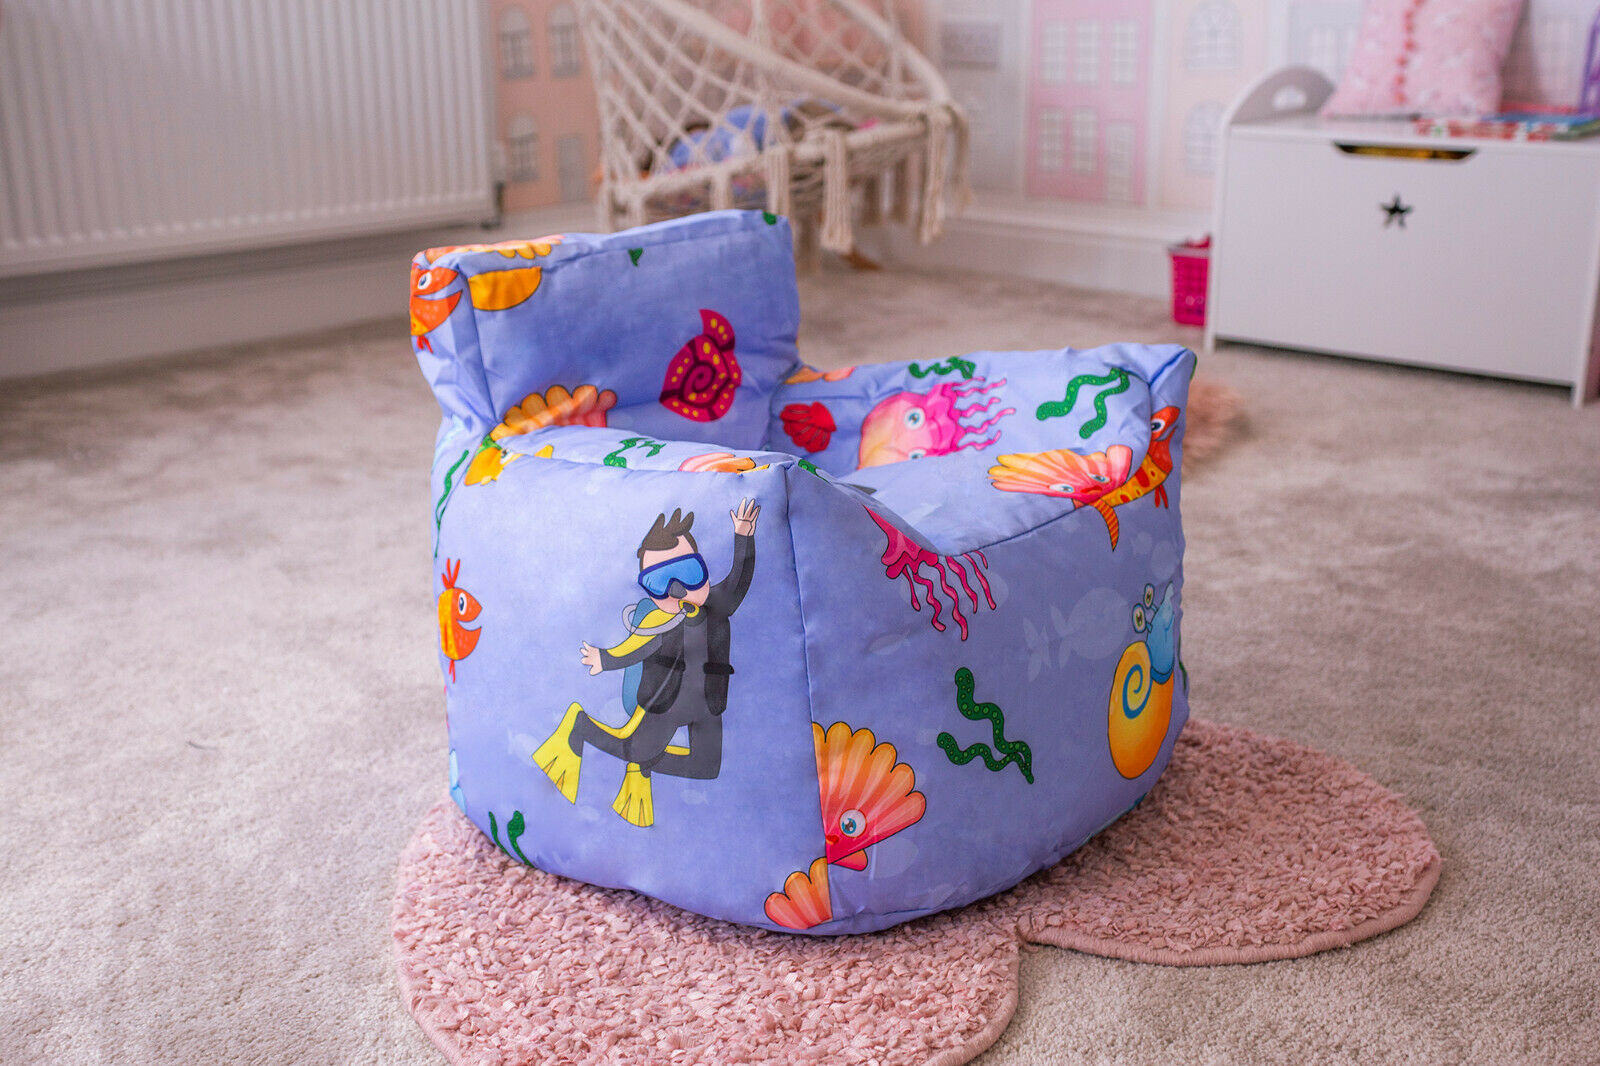 KIDS Joblot Childrens Bean Bag Chair Cover Kids Beanbag Bedroom Soft Toy X 6